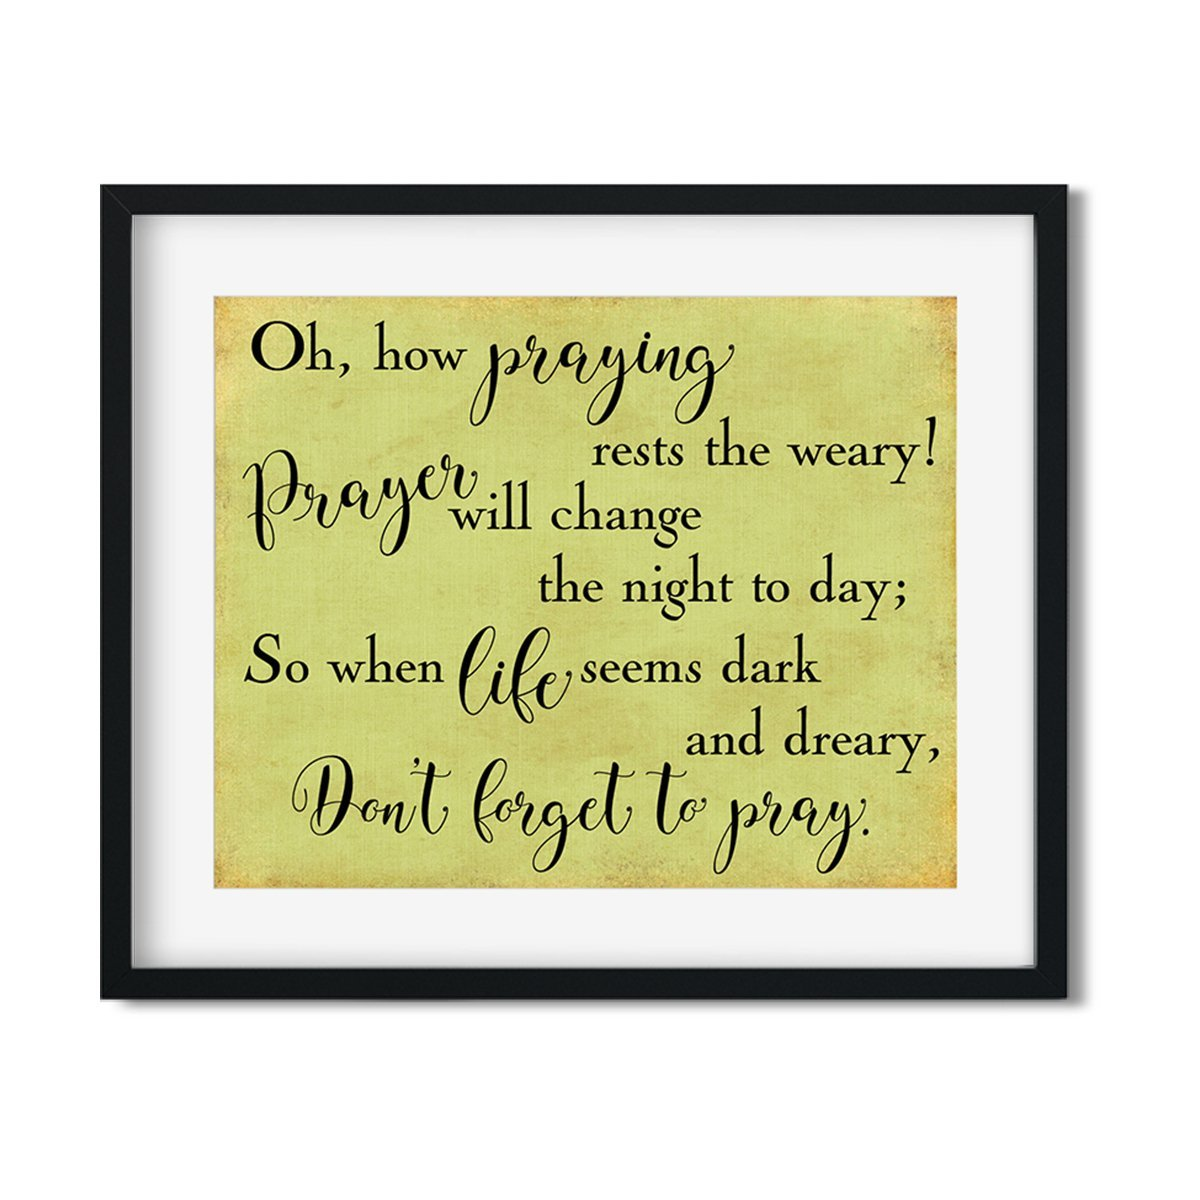 Oh, how praying rests the weary - Art Print - Netties Expressions